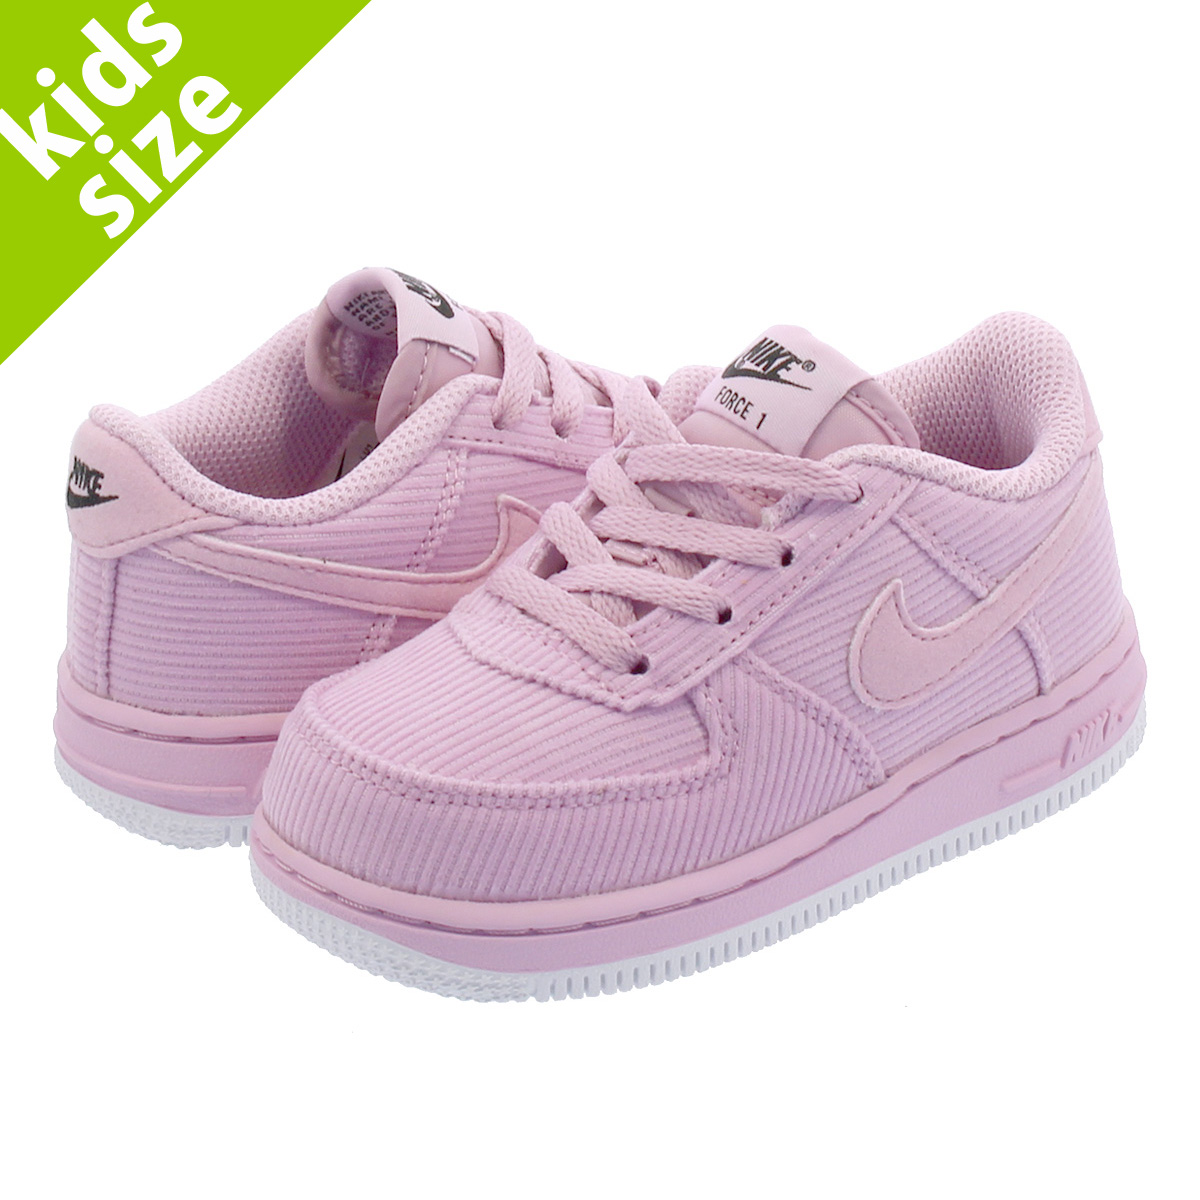 separation shoes 9ccac 94489 NIKE AIR FORCE 1 LOW TD Nike air force 1 low TD PINK WHITE ar2818-600